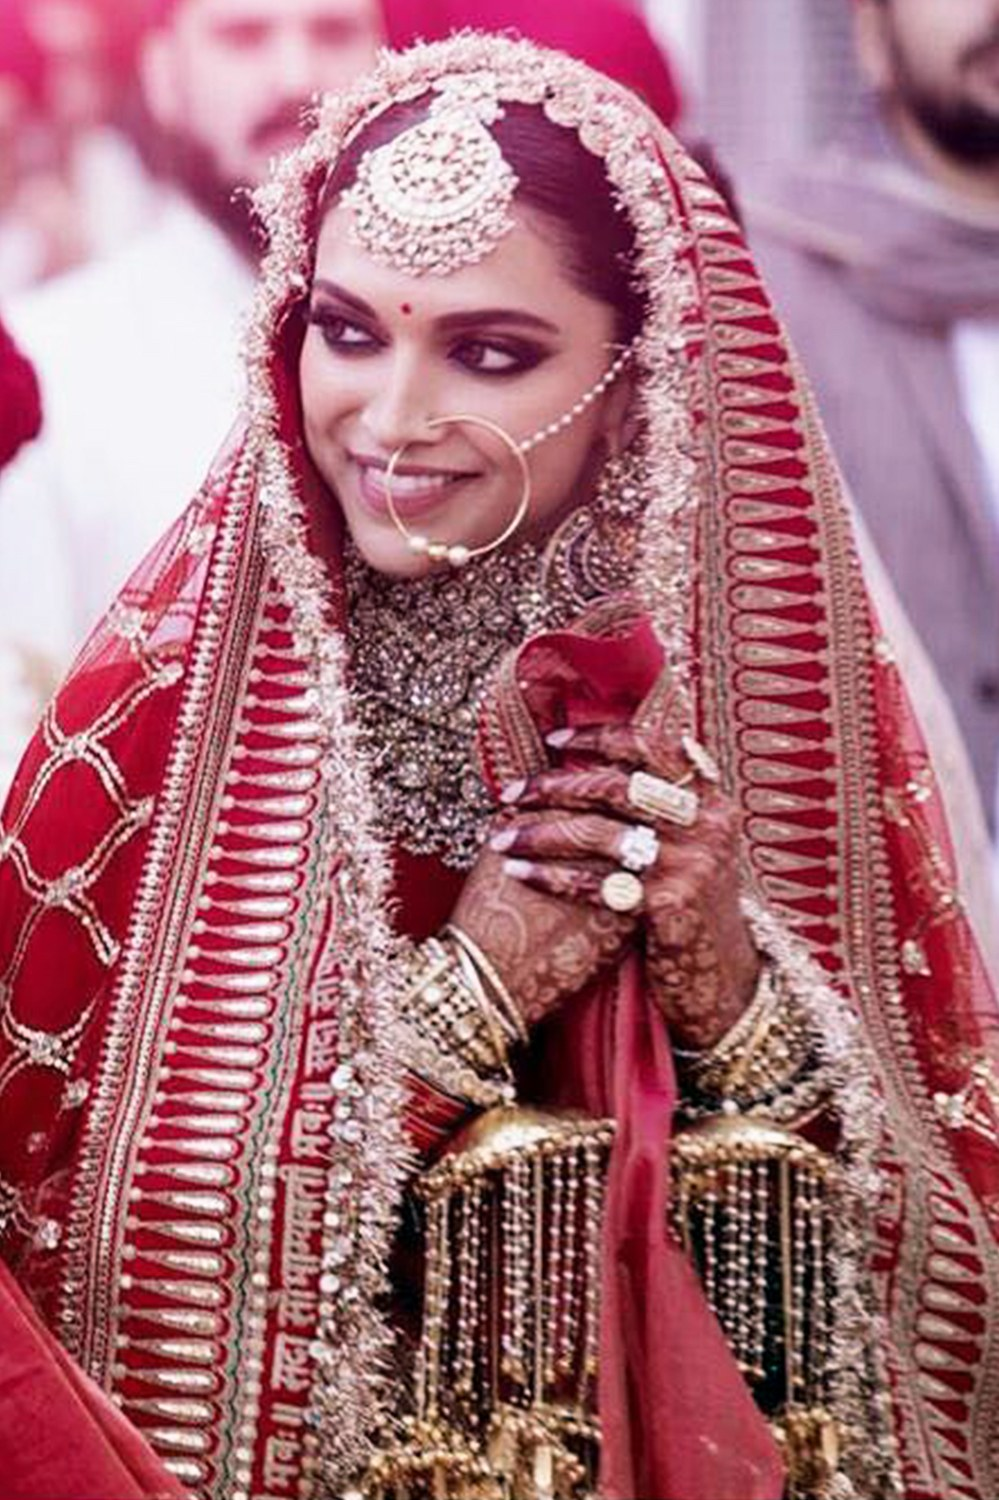 Deepika Padukone Wedding Lehenga – What made it the most searched wedding lehenga of 2019?